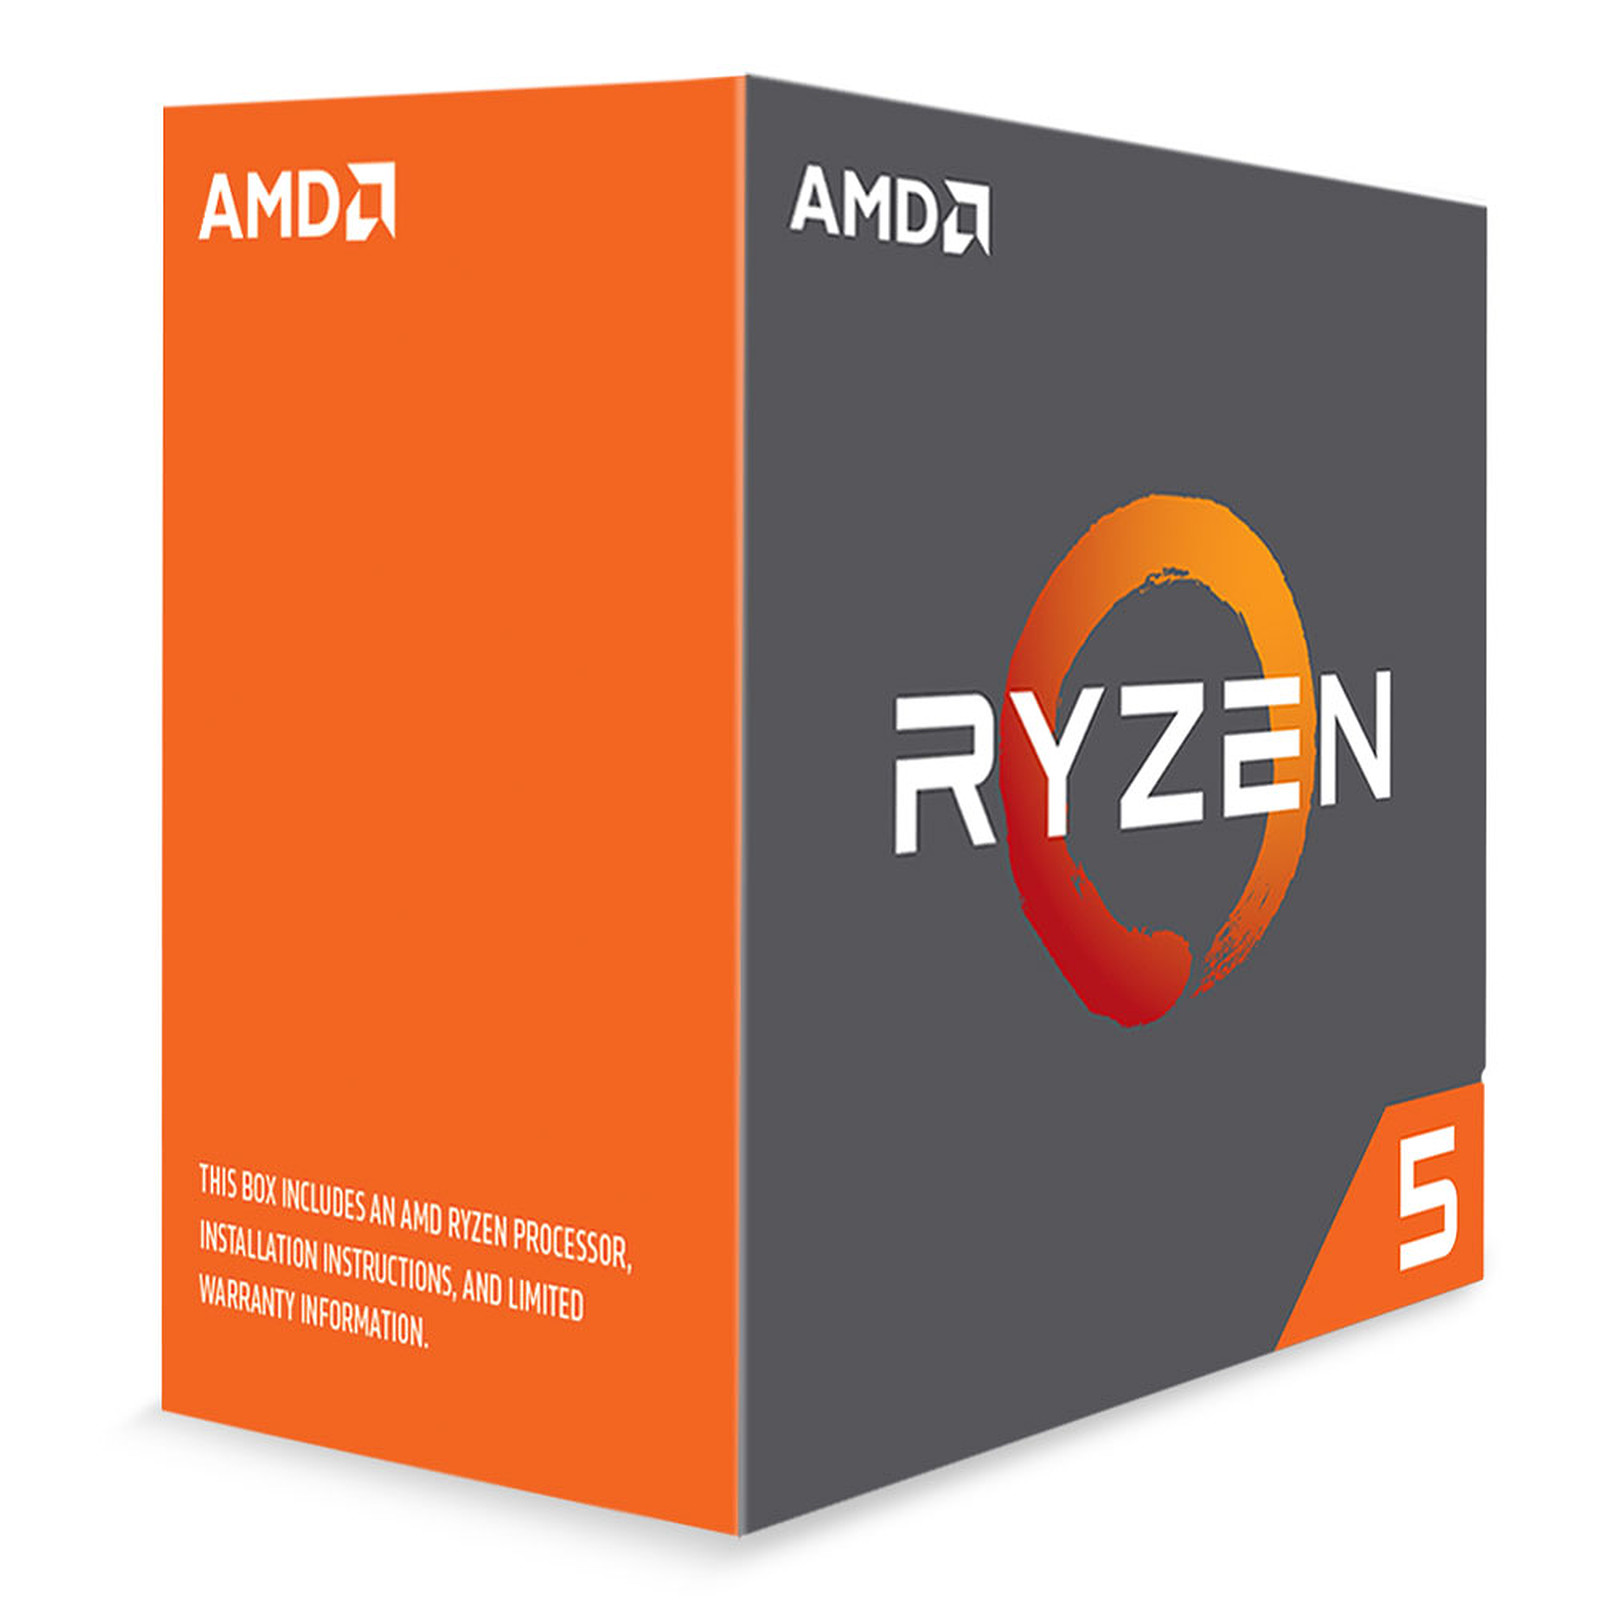 AMD Ryzen 5 1600X (3.6 GHz)